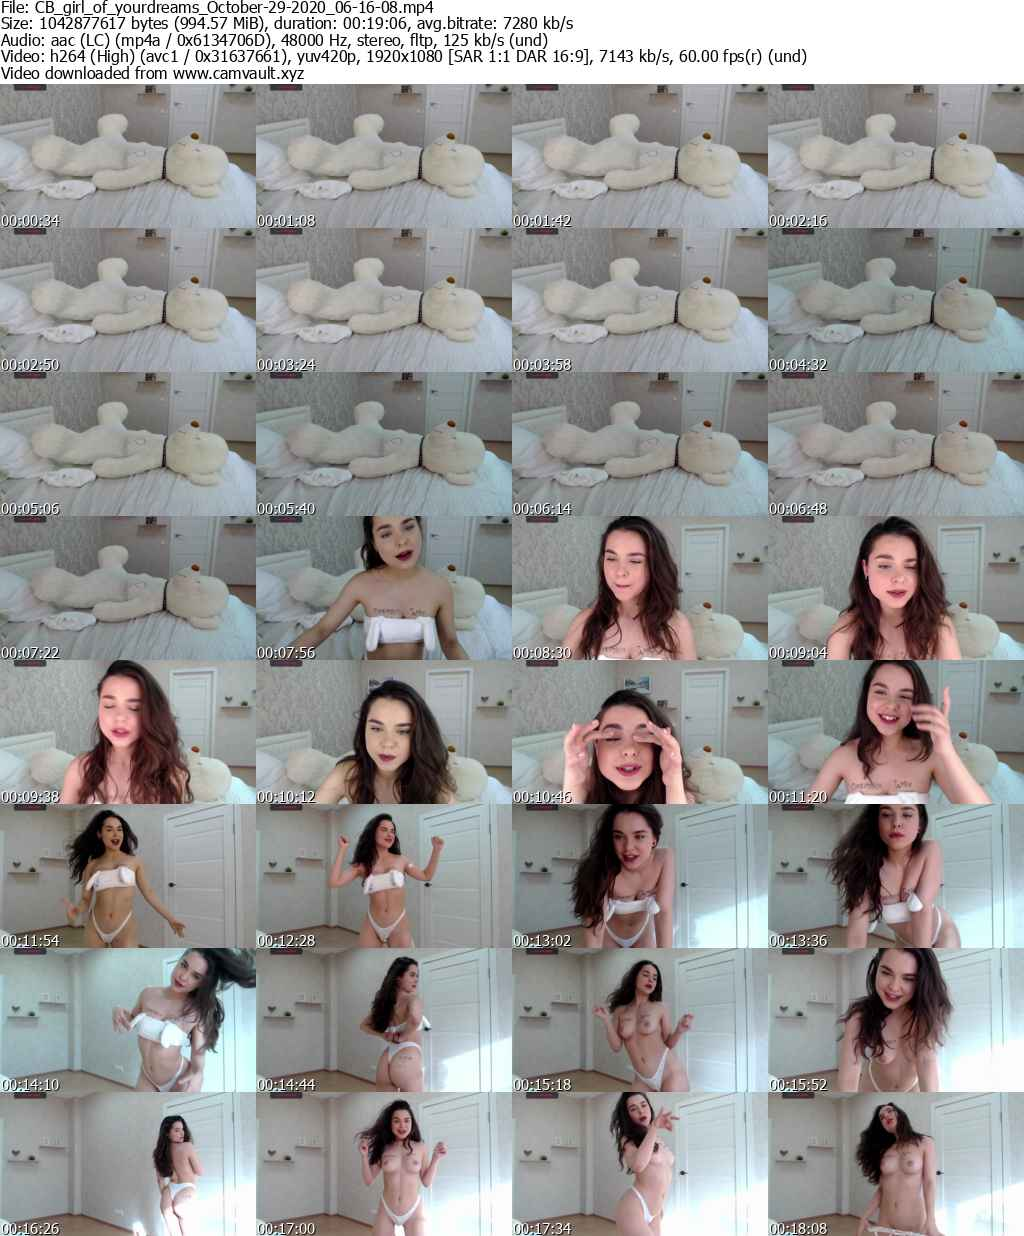 Video preview for model girl_of_yourdreams